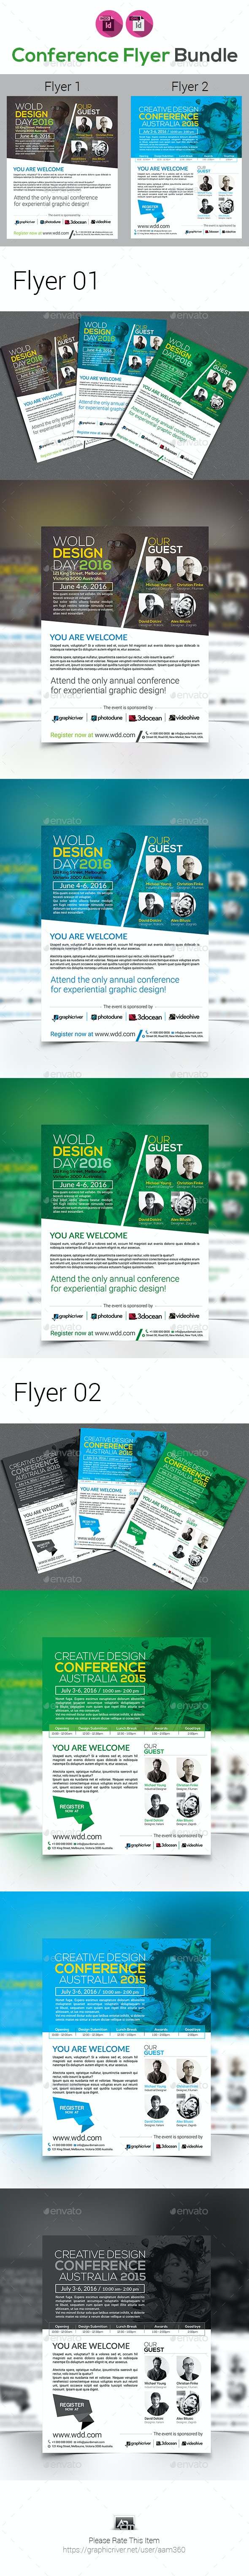 Event Summit Conference Flyer Bundle - Events Flyers